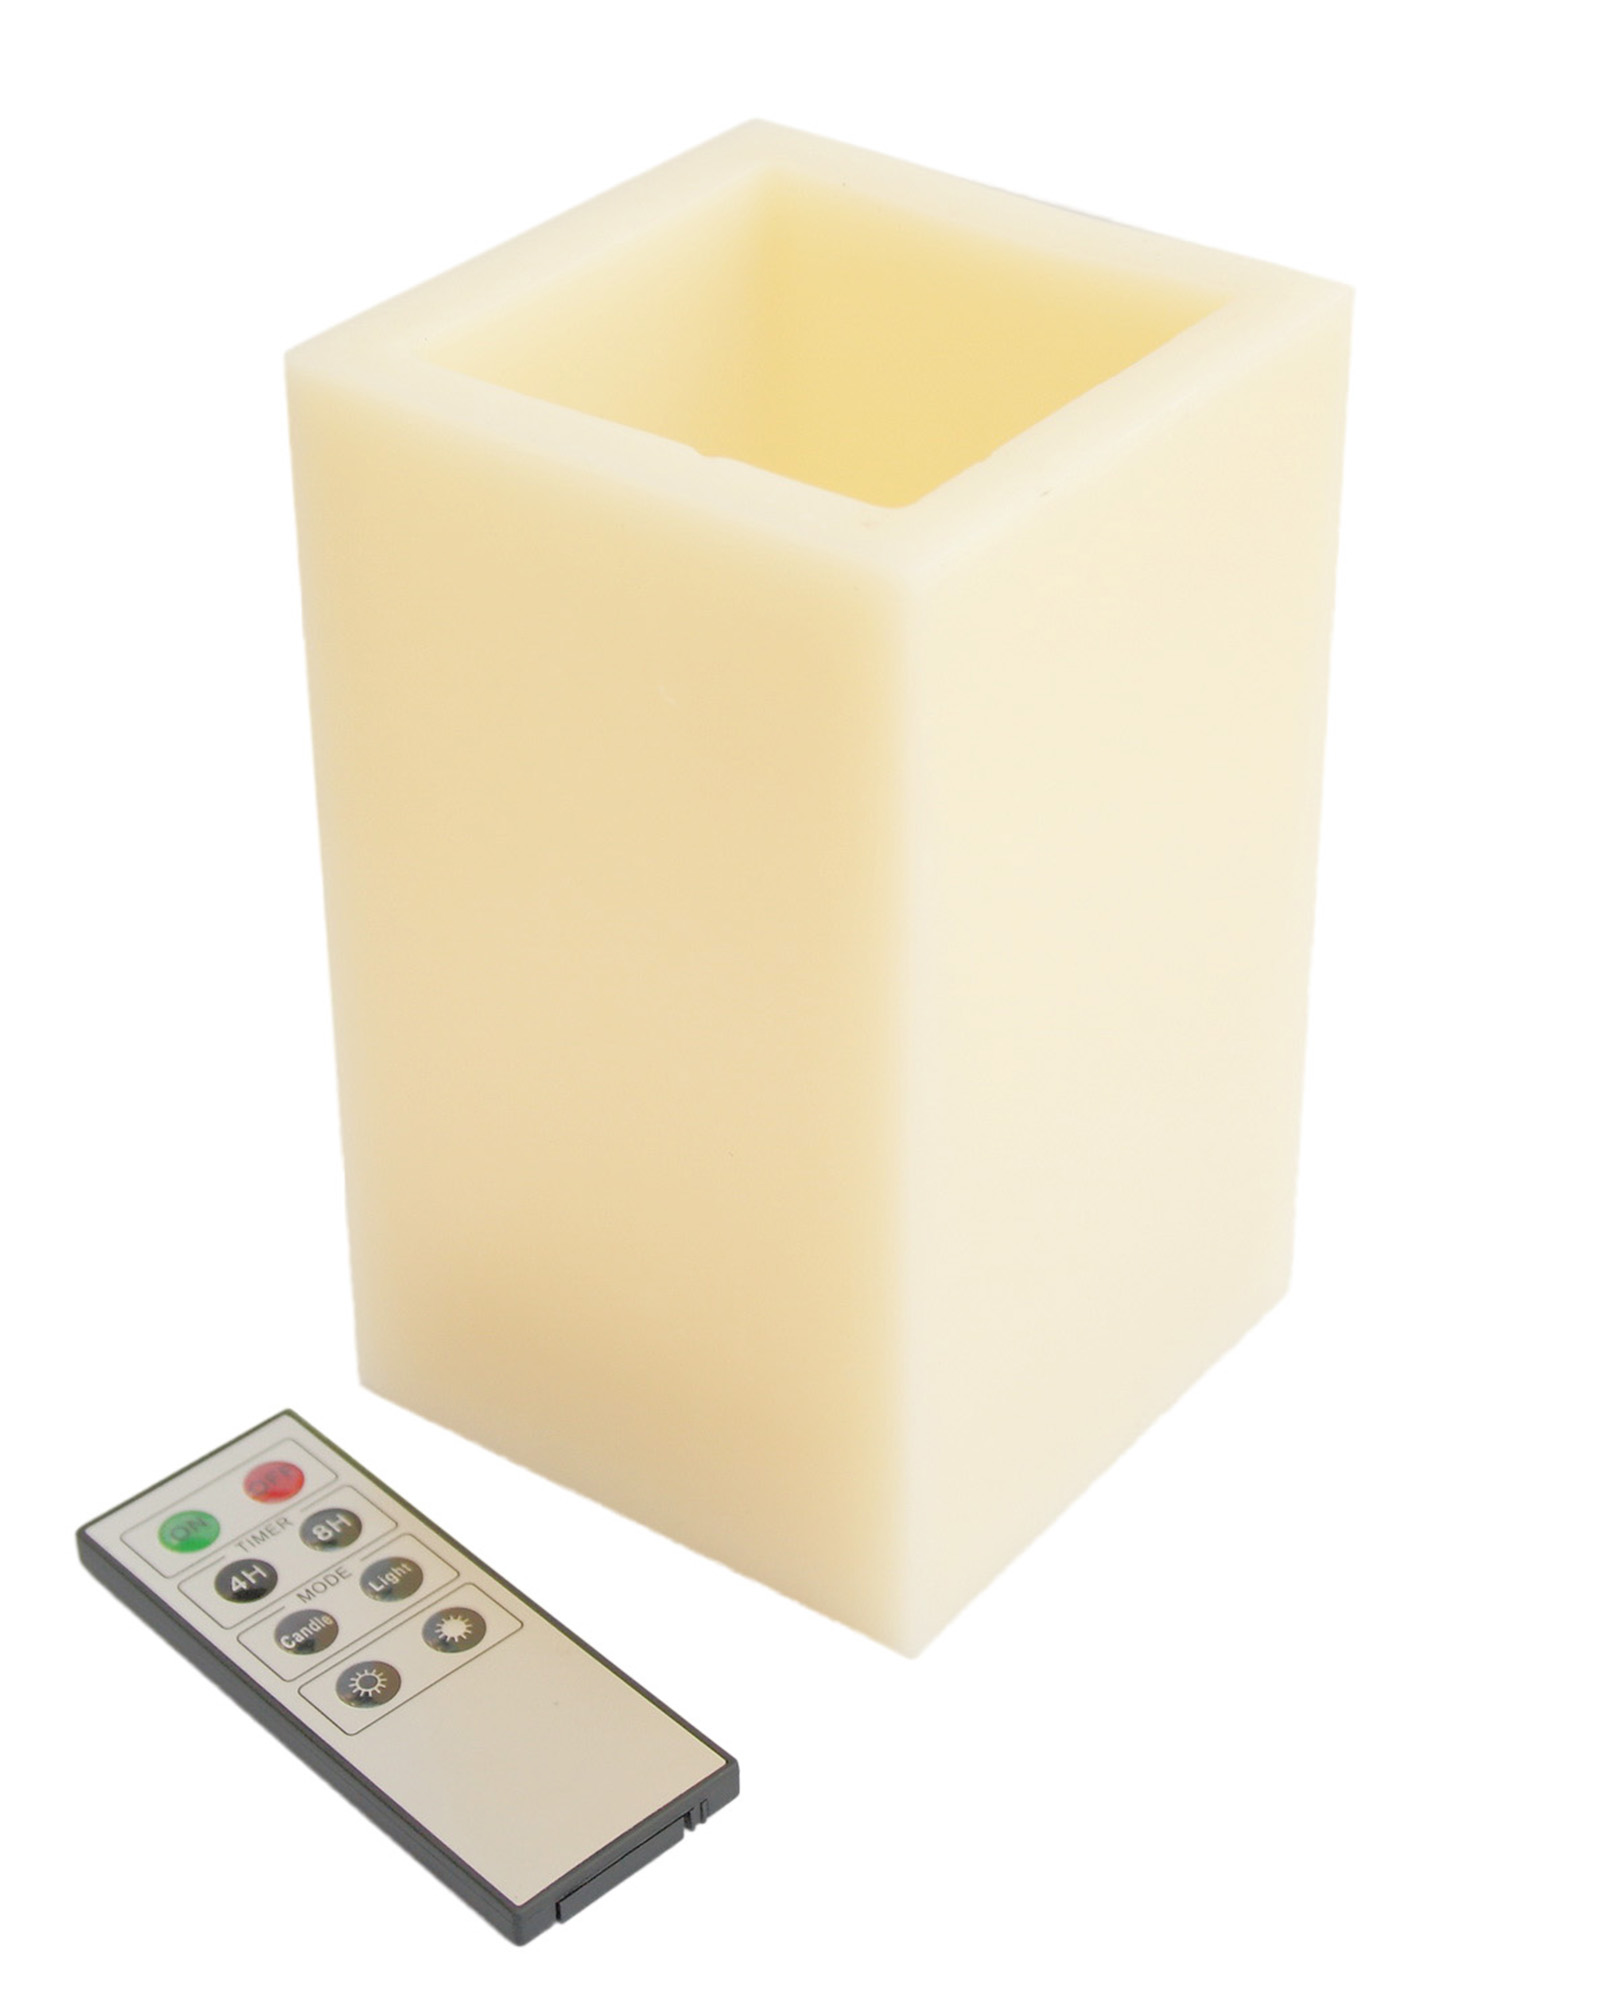 Square Smooth Edge Remote Controlled Flameless Wax Pillar Candle - 5 Inch Tall